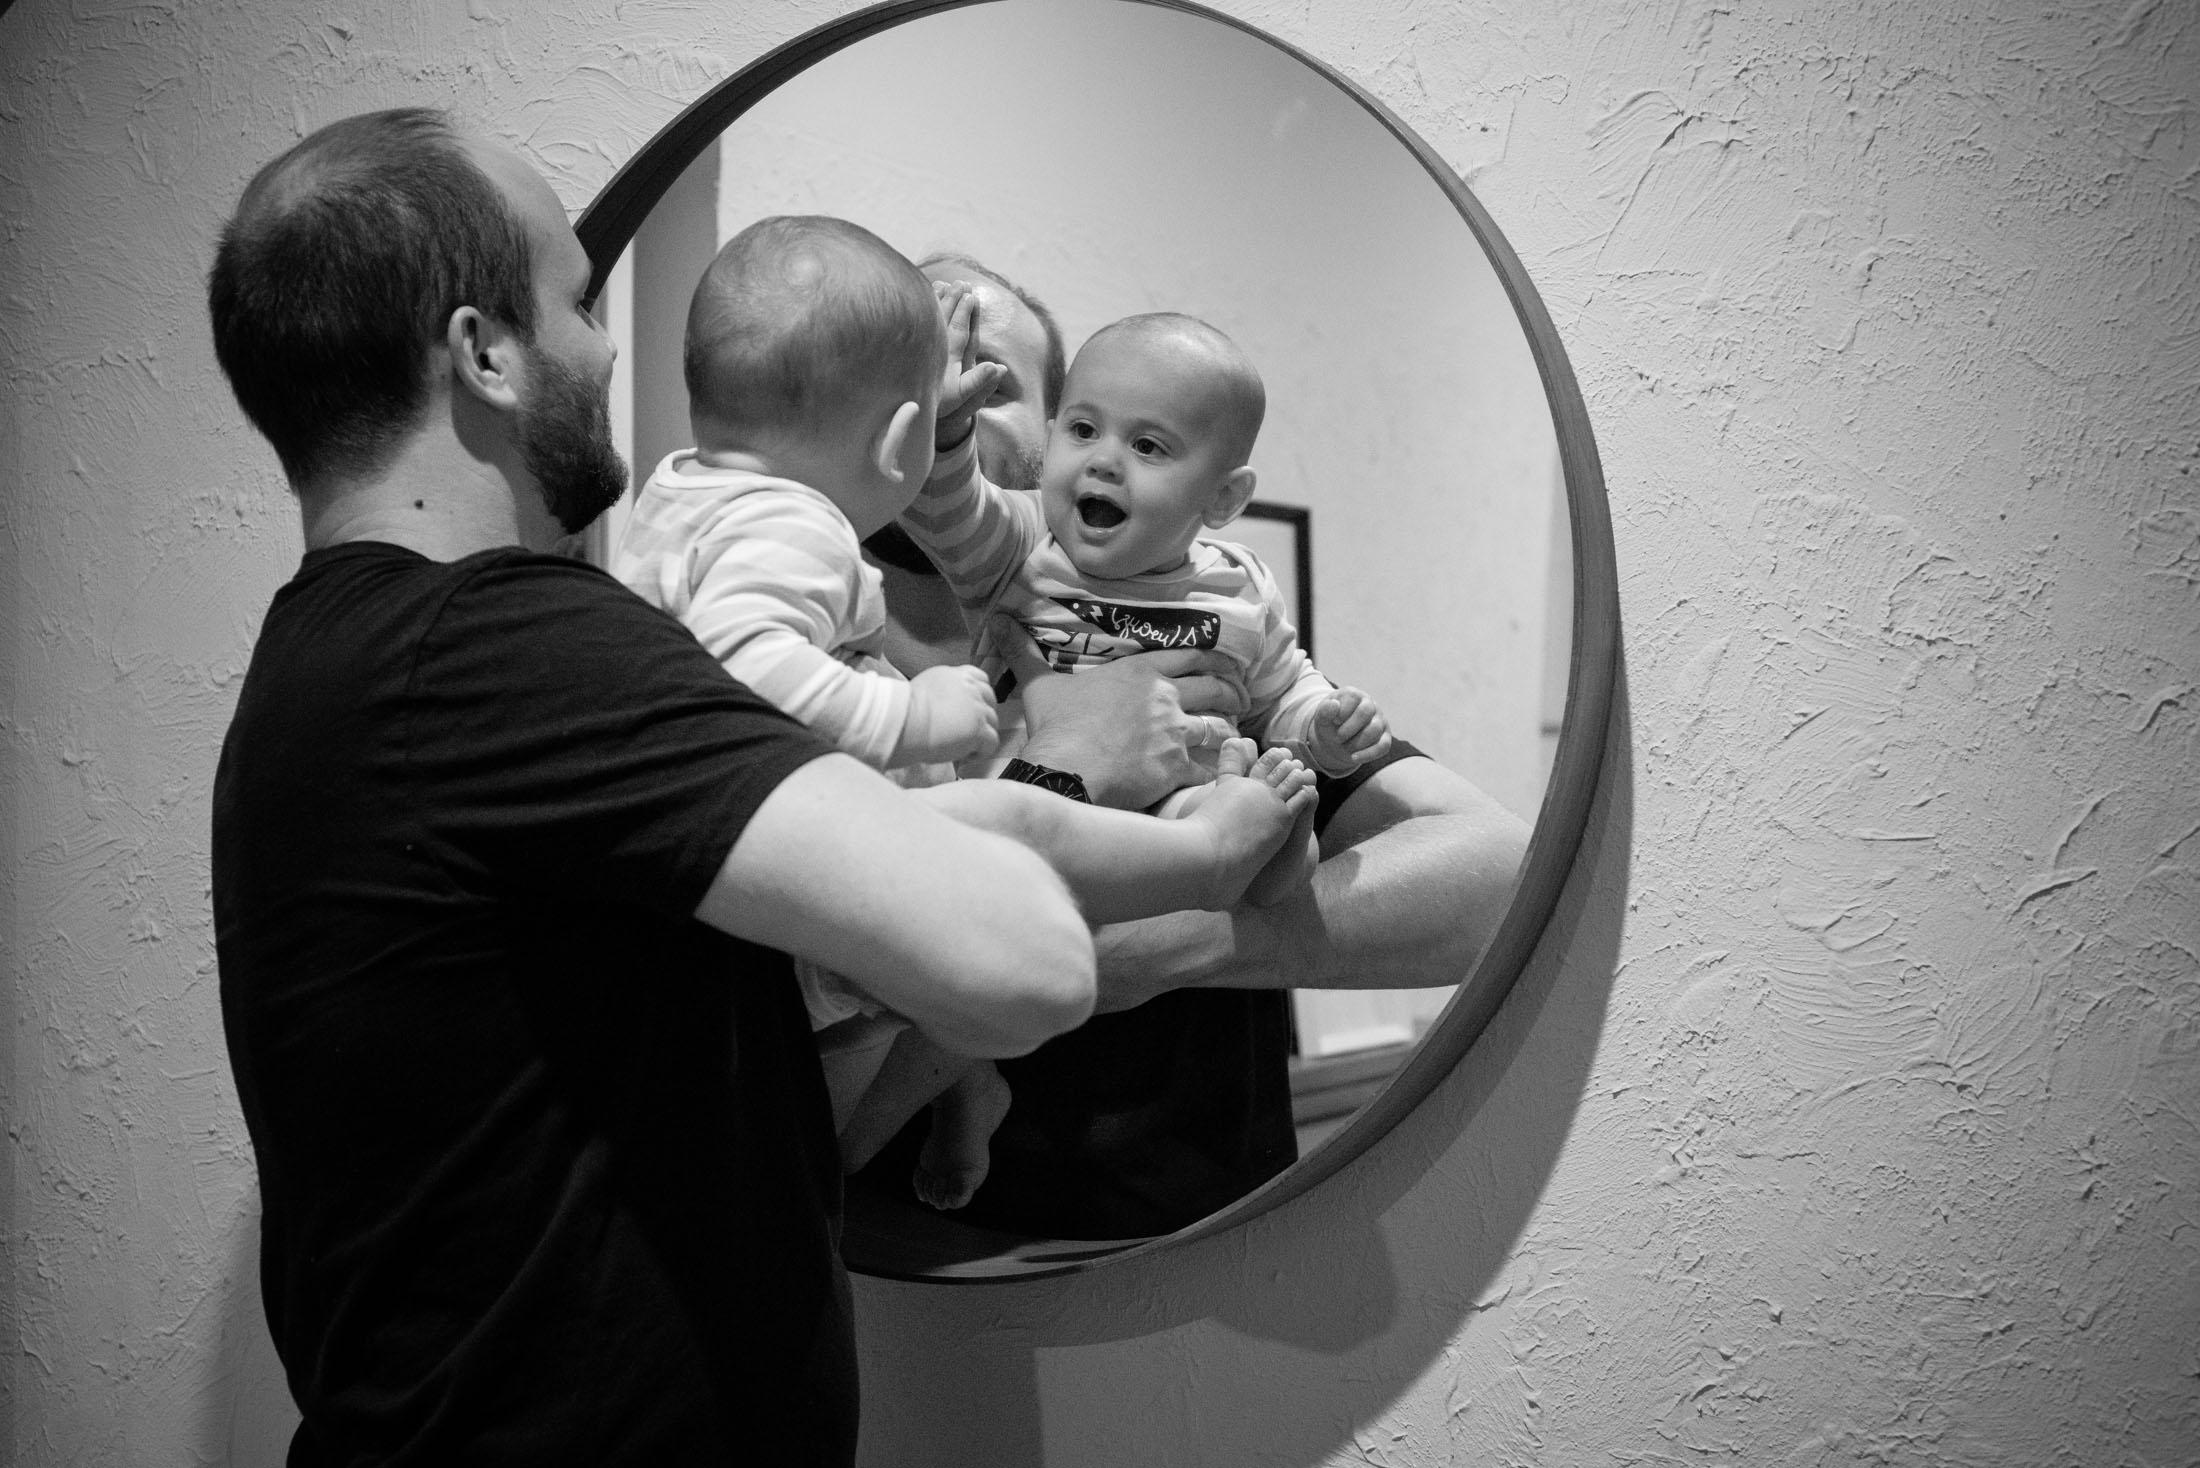 Harley_Family-Photography-unposed12.JPG